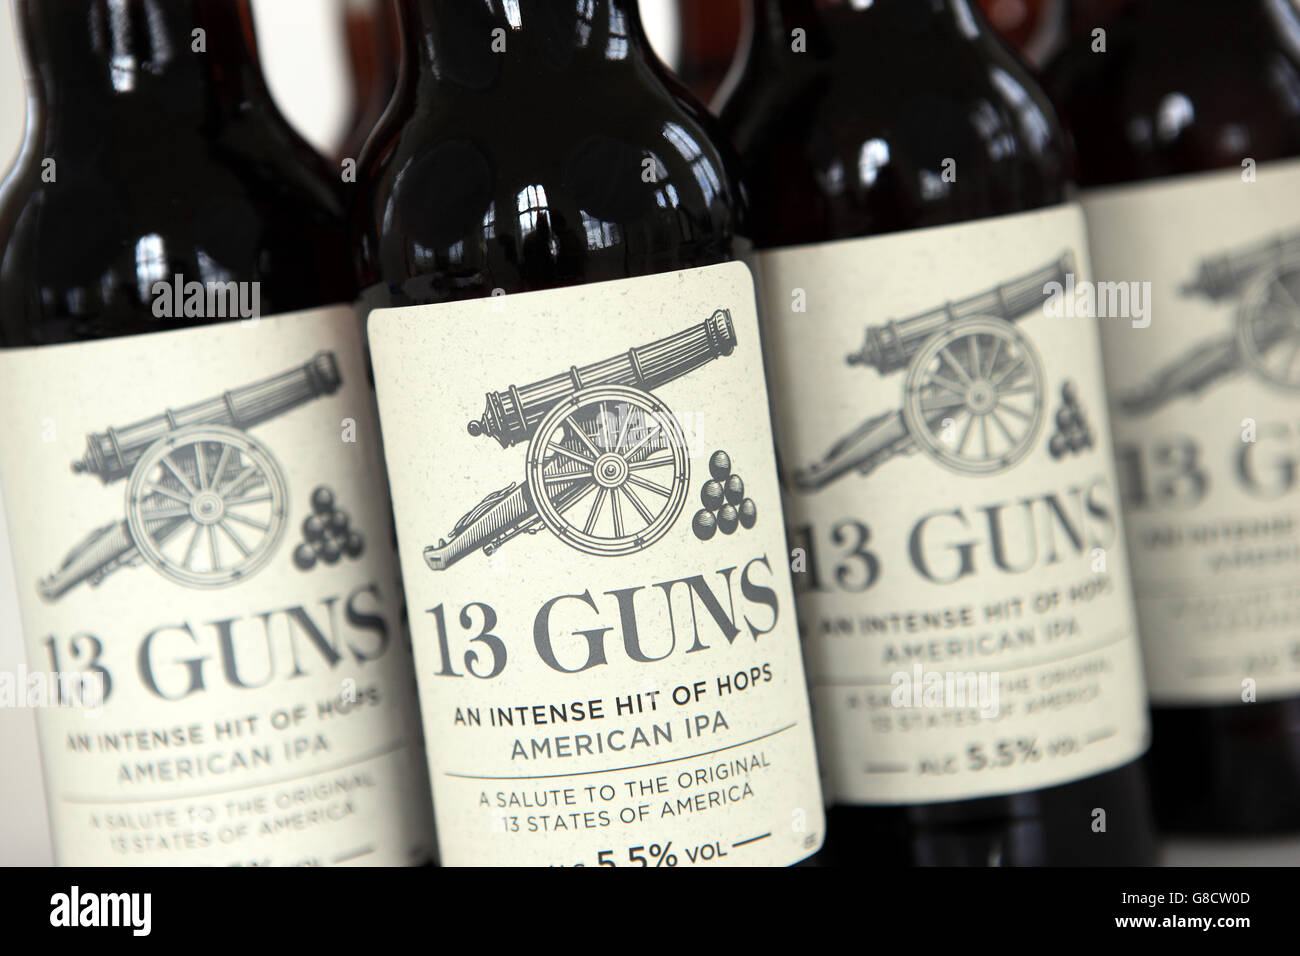 Bottles of 13 Guns American style IPA brewed in Lancashire, England - Stock Image